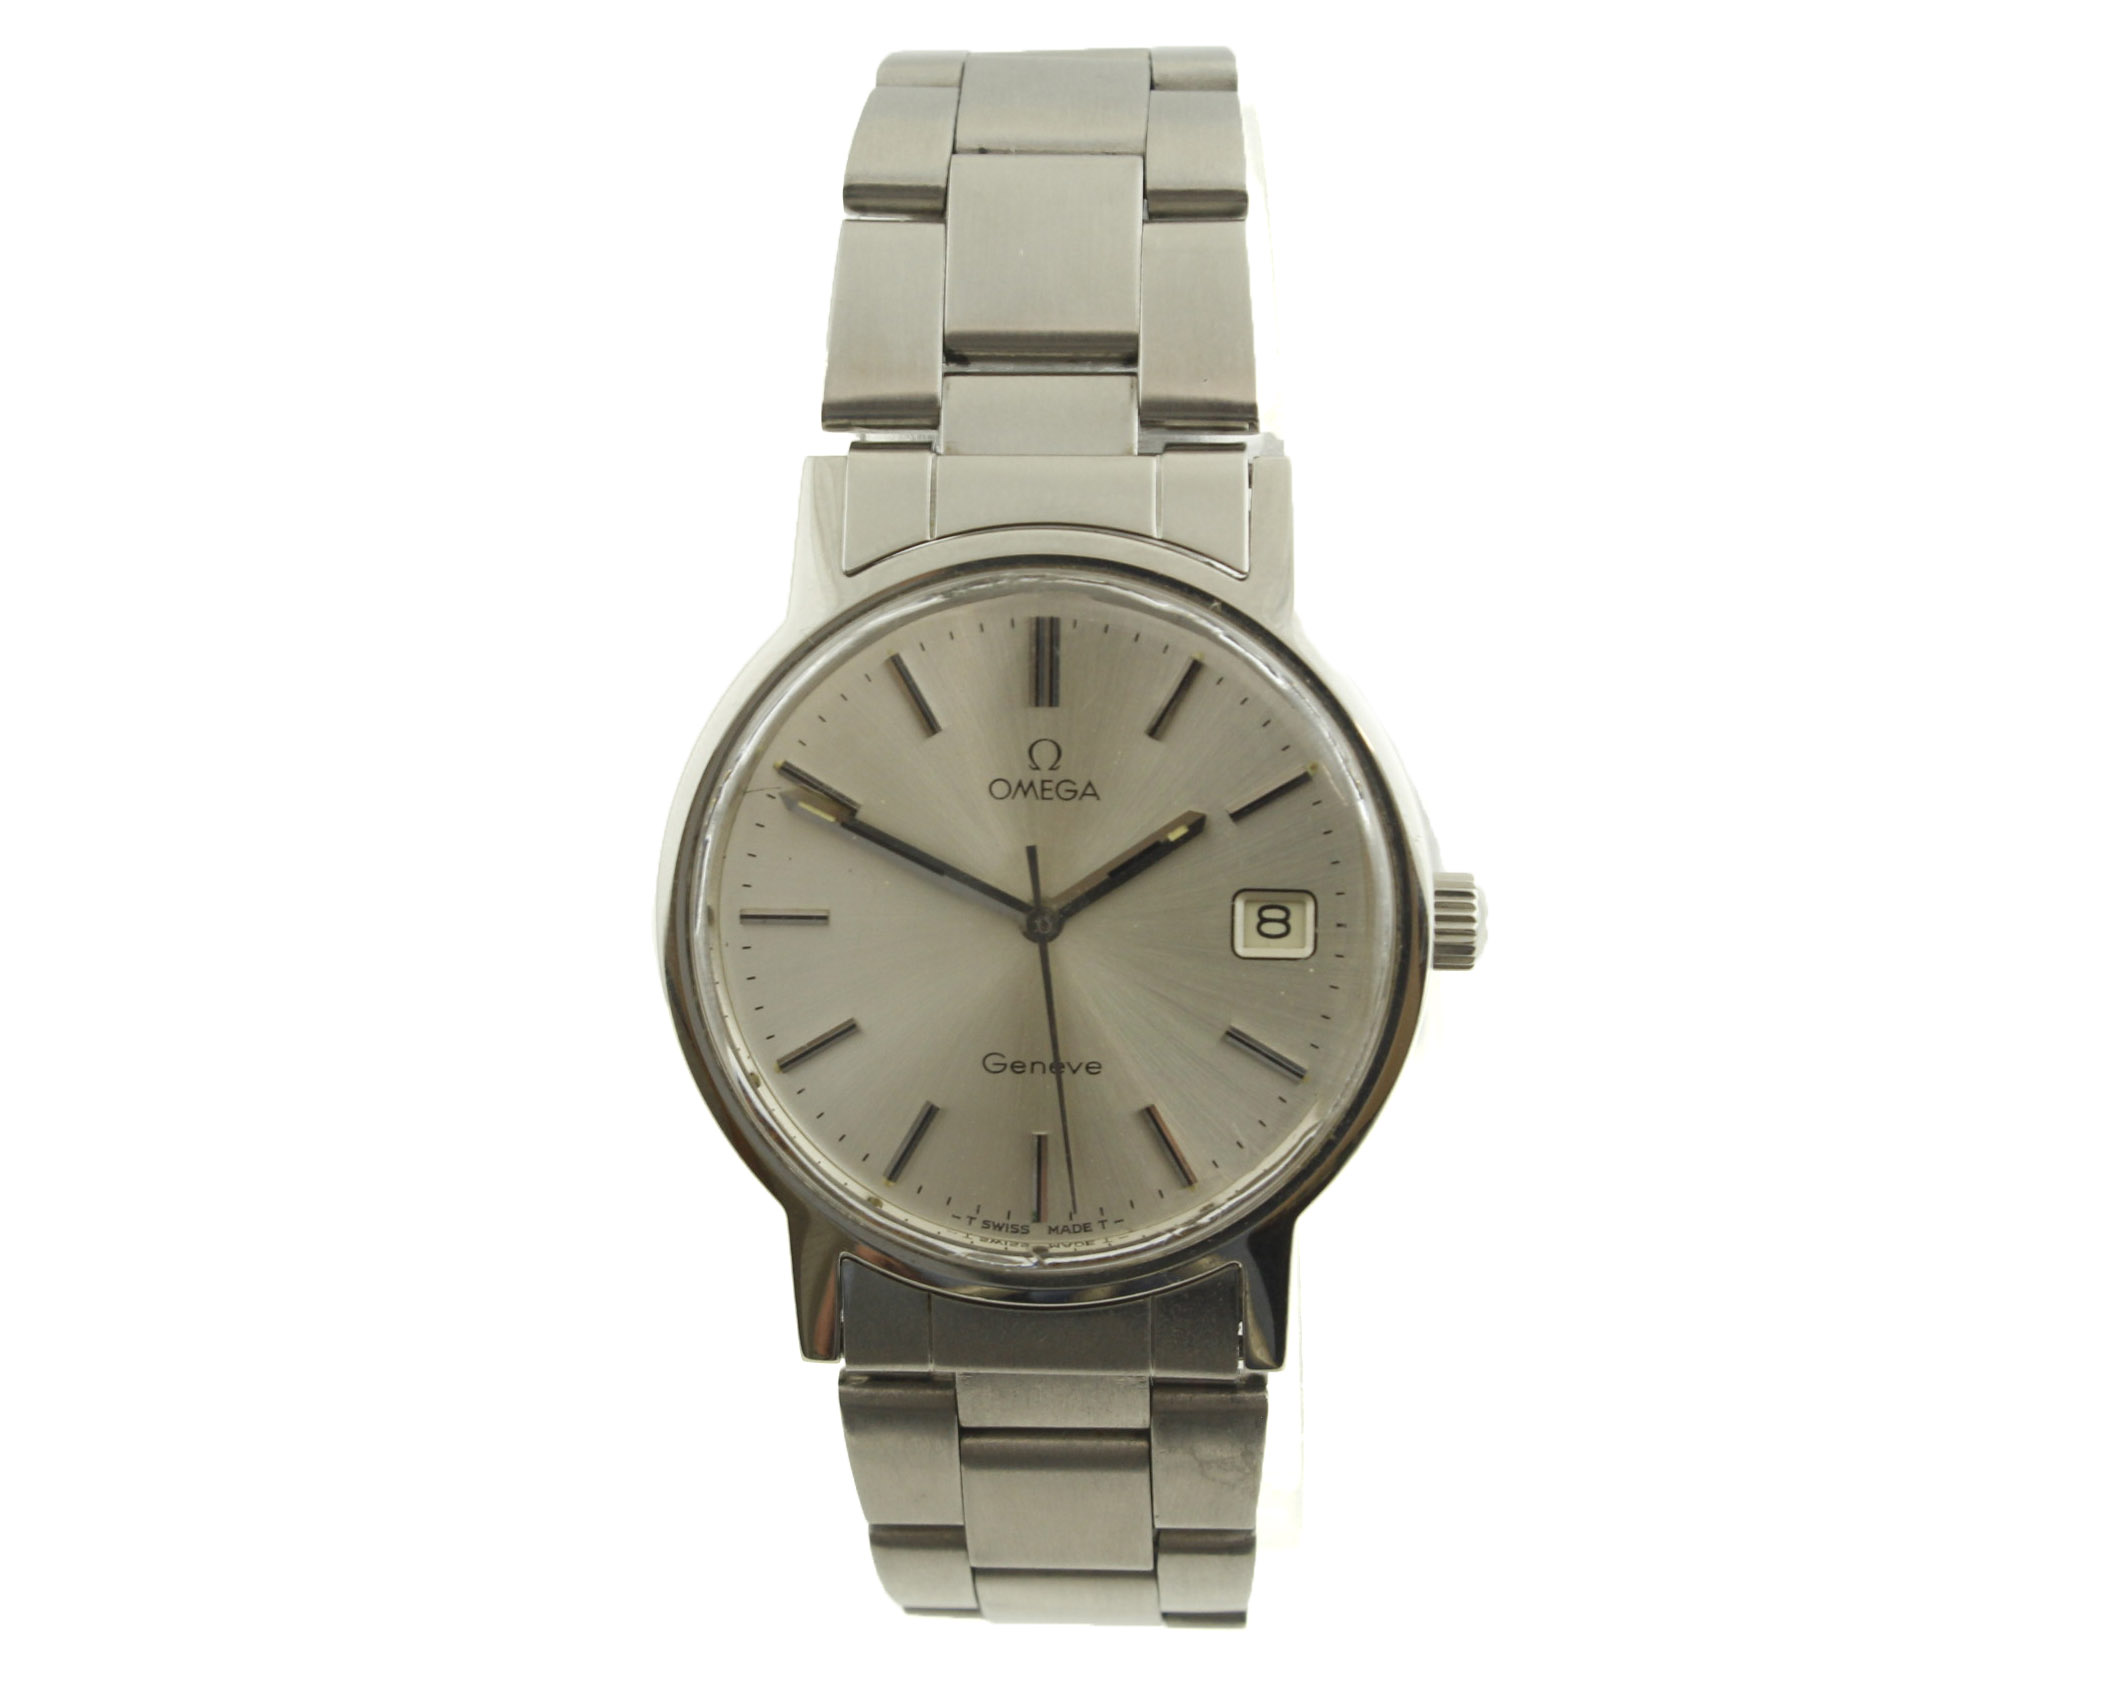 Lot 45 - OMEGA - A 1970's stainless steel OMEGA Geneve manual-wind gents wristwatch with silvered dial,